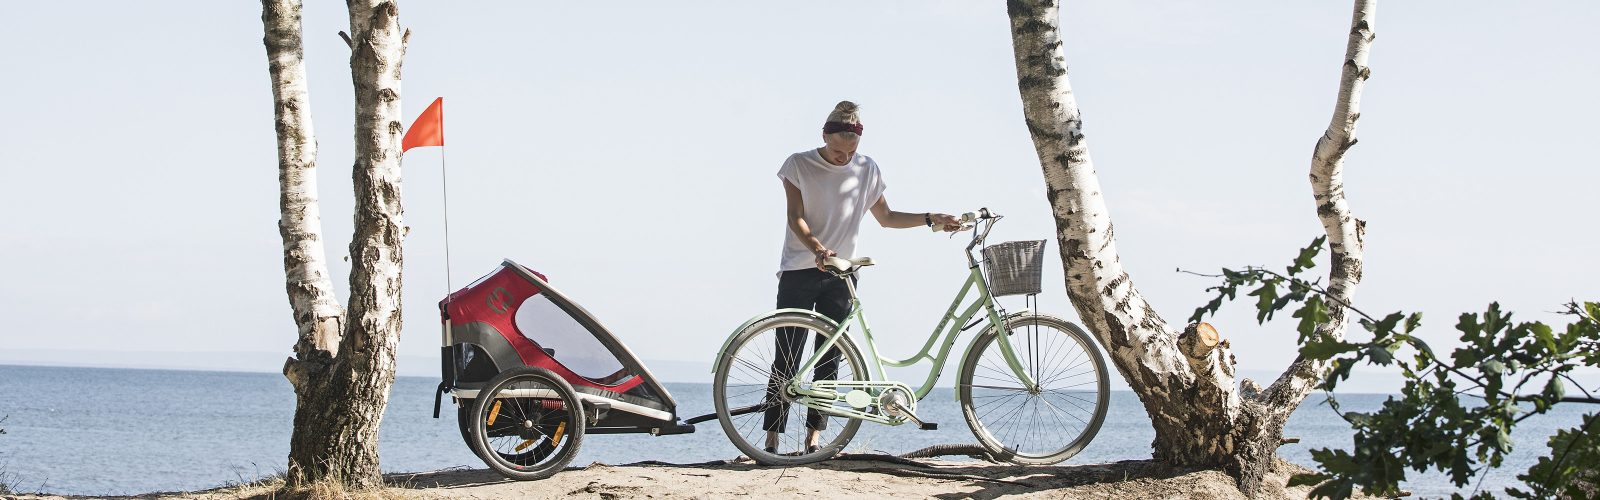 Hamax Outback bicycle trailer on the beach